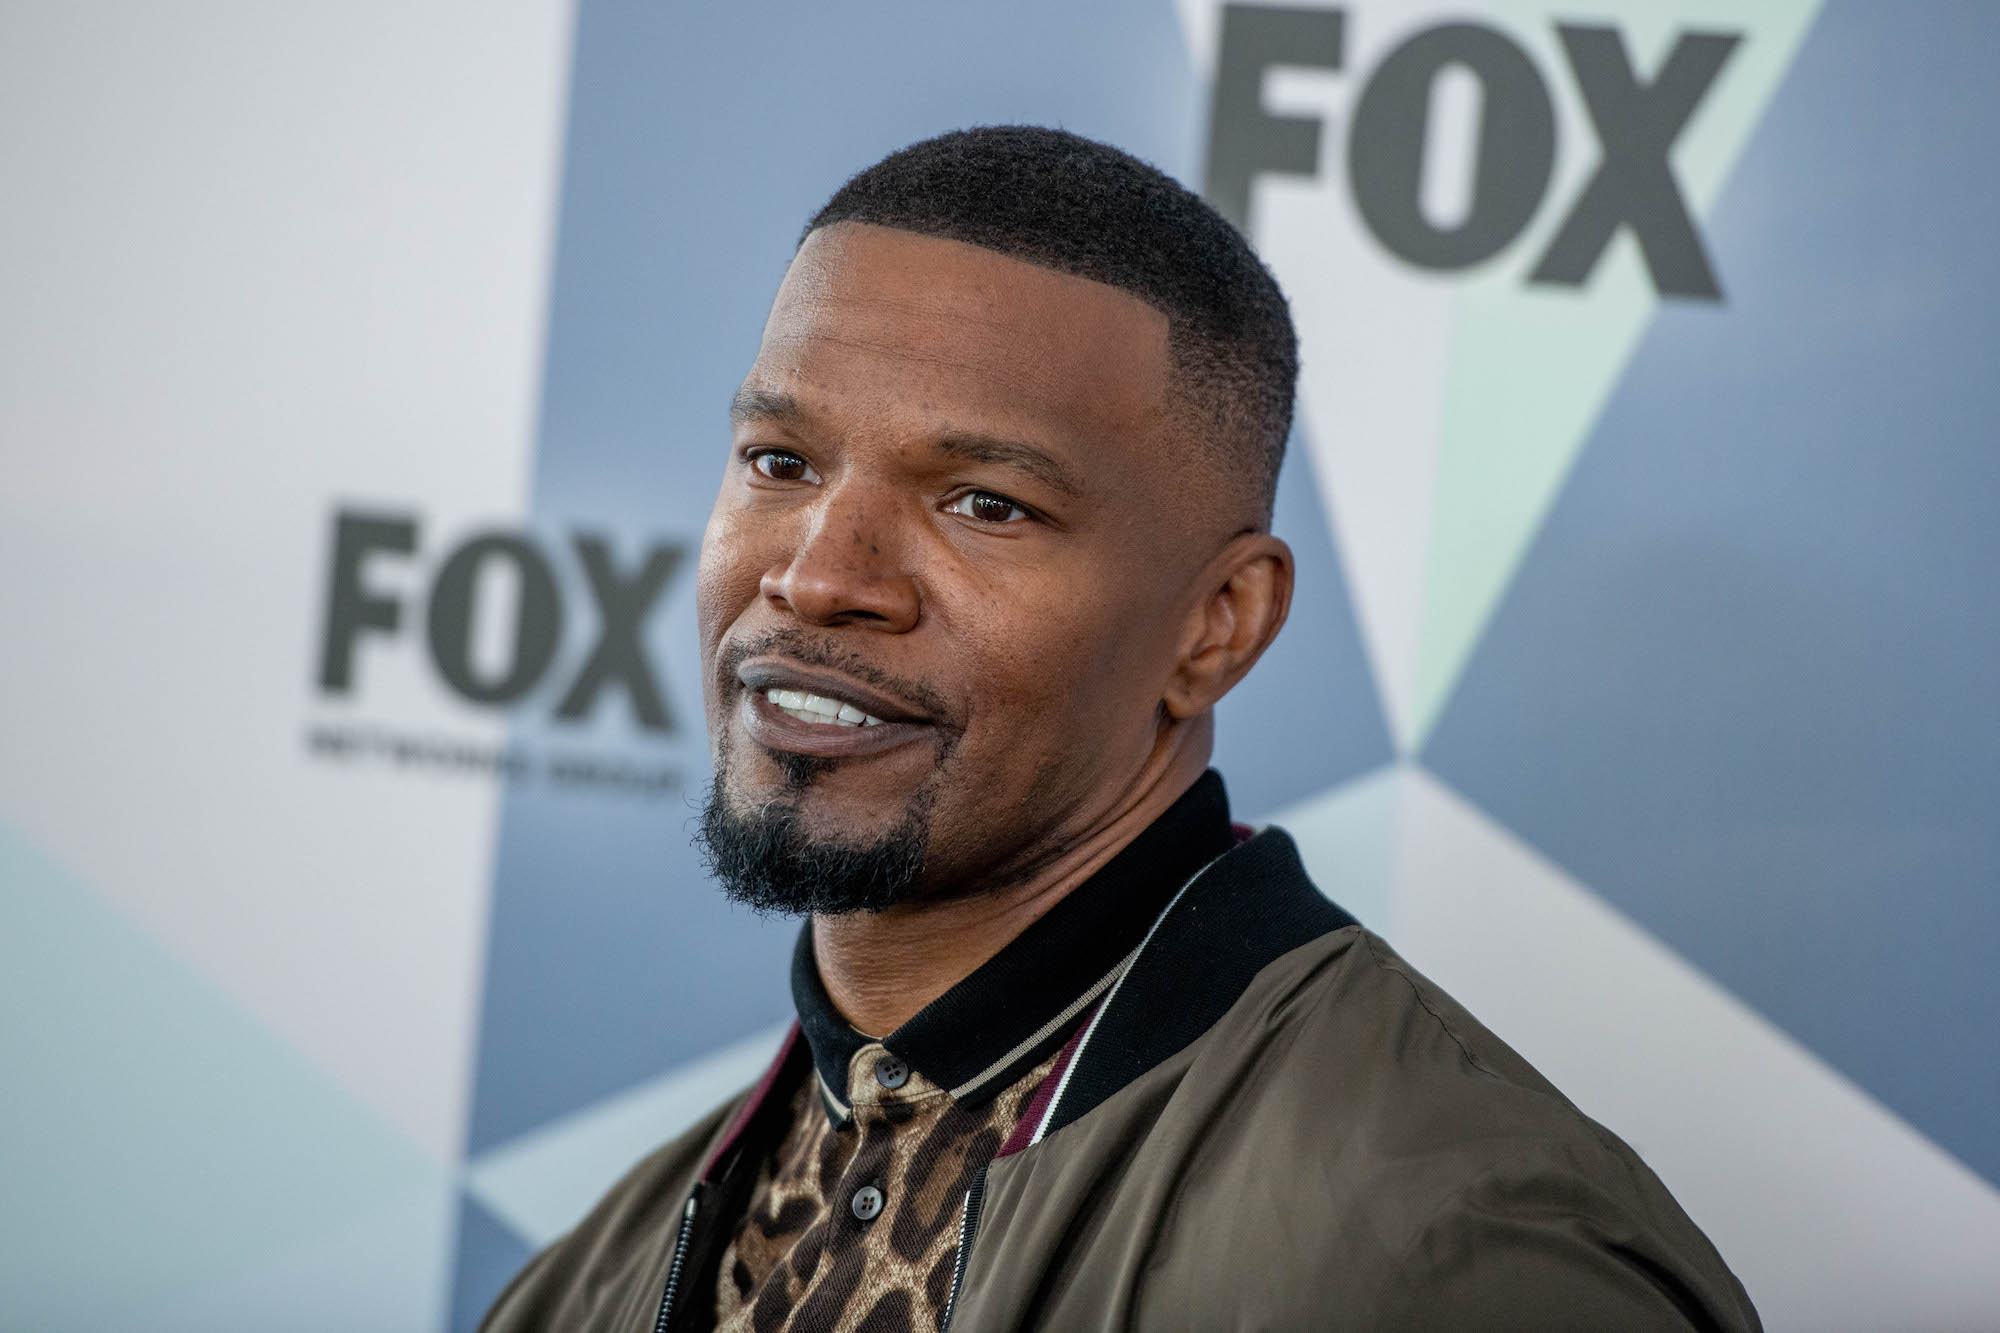 Jamie Foxx at the 2018 Fox Network Upfront at Wollman Rink, Central Park on May 14, 2018